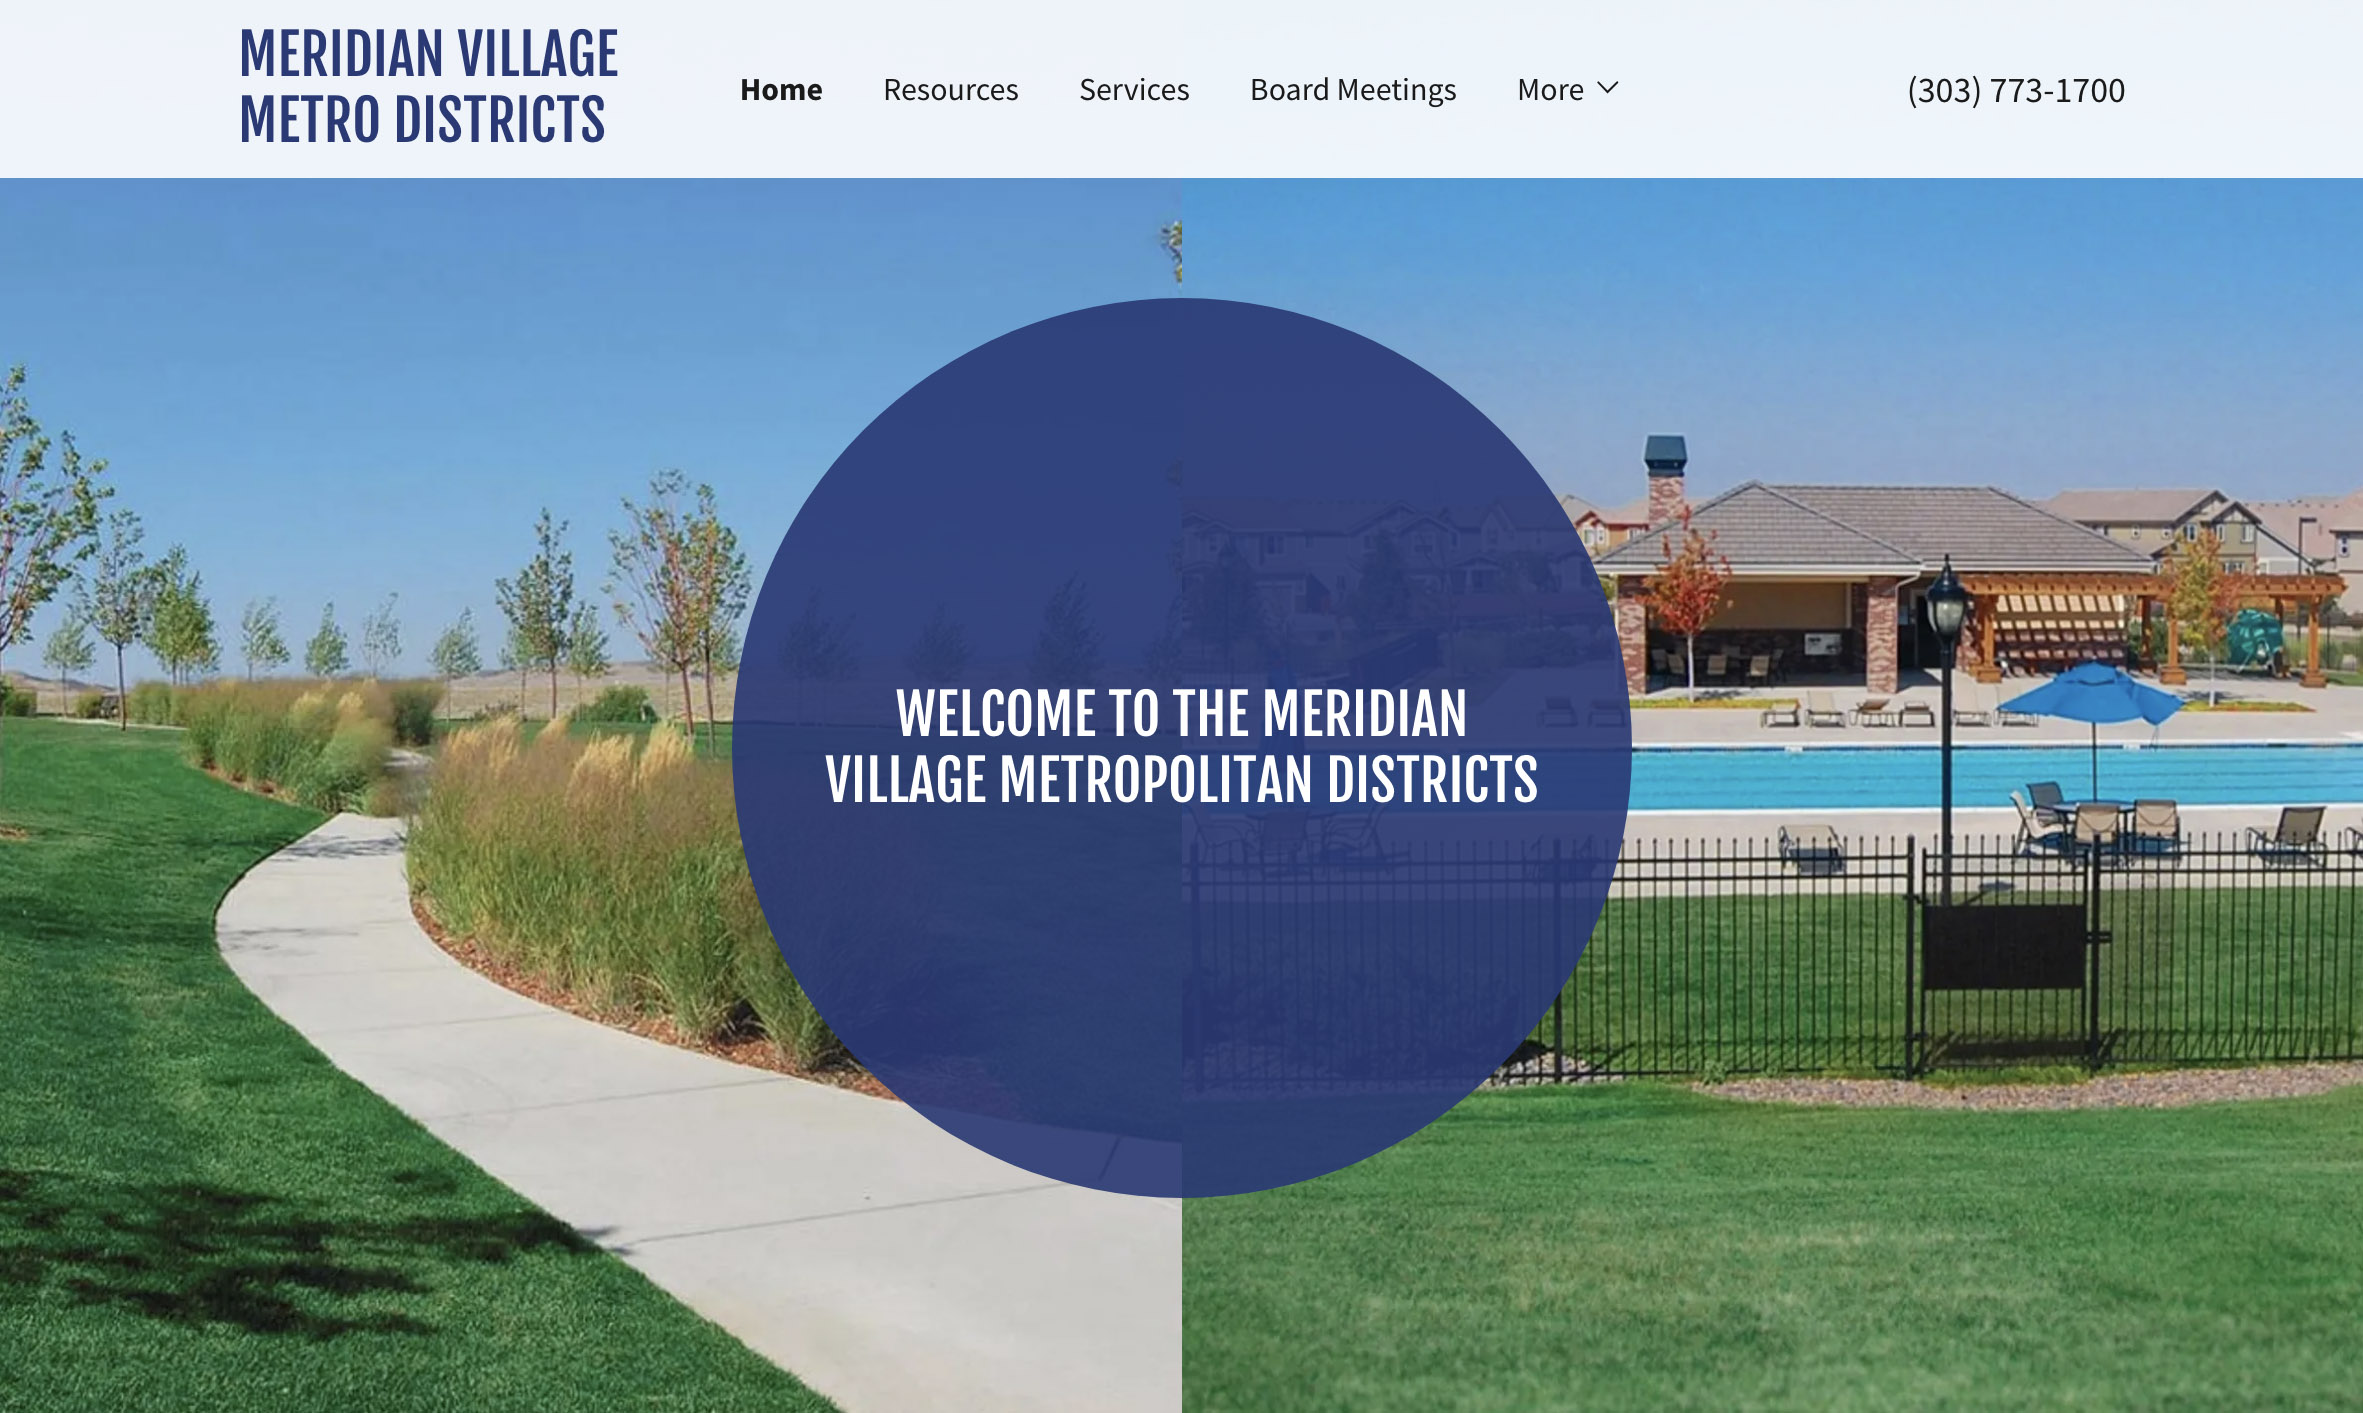 Meridian Village Metro District